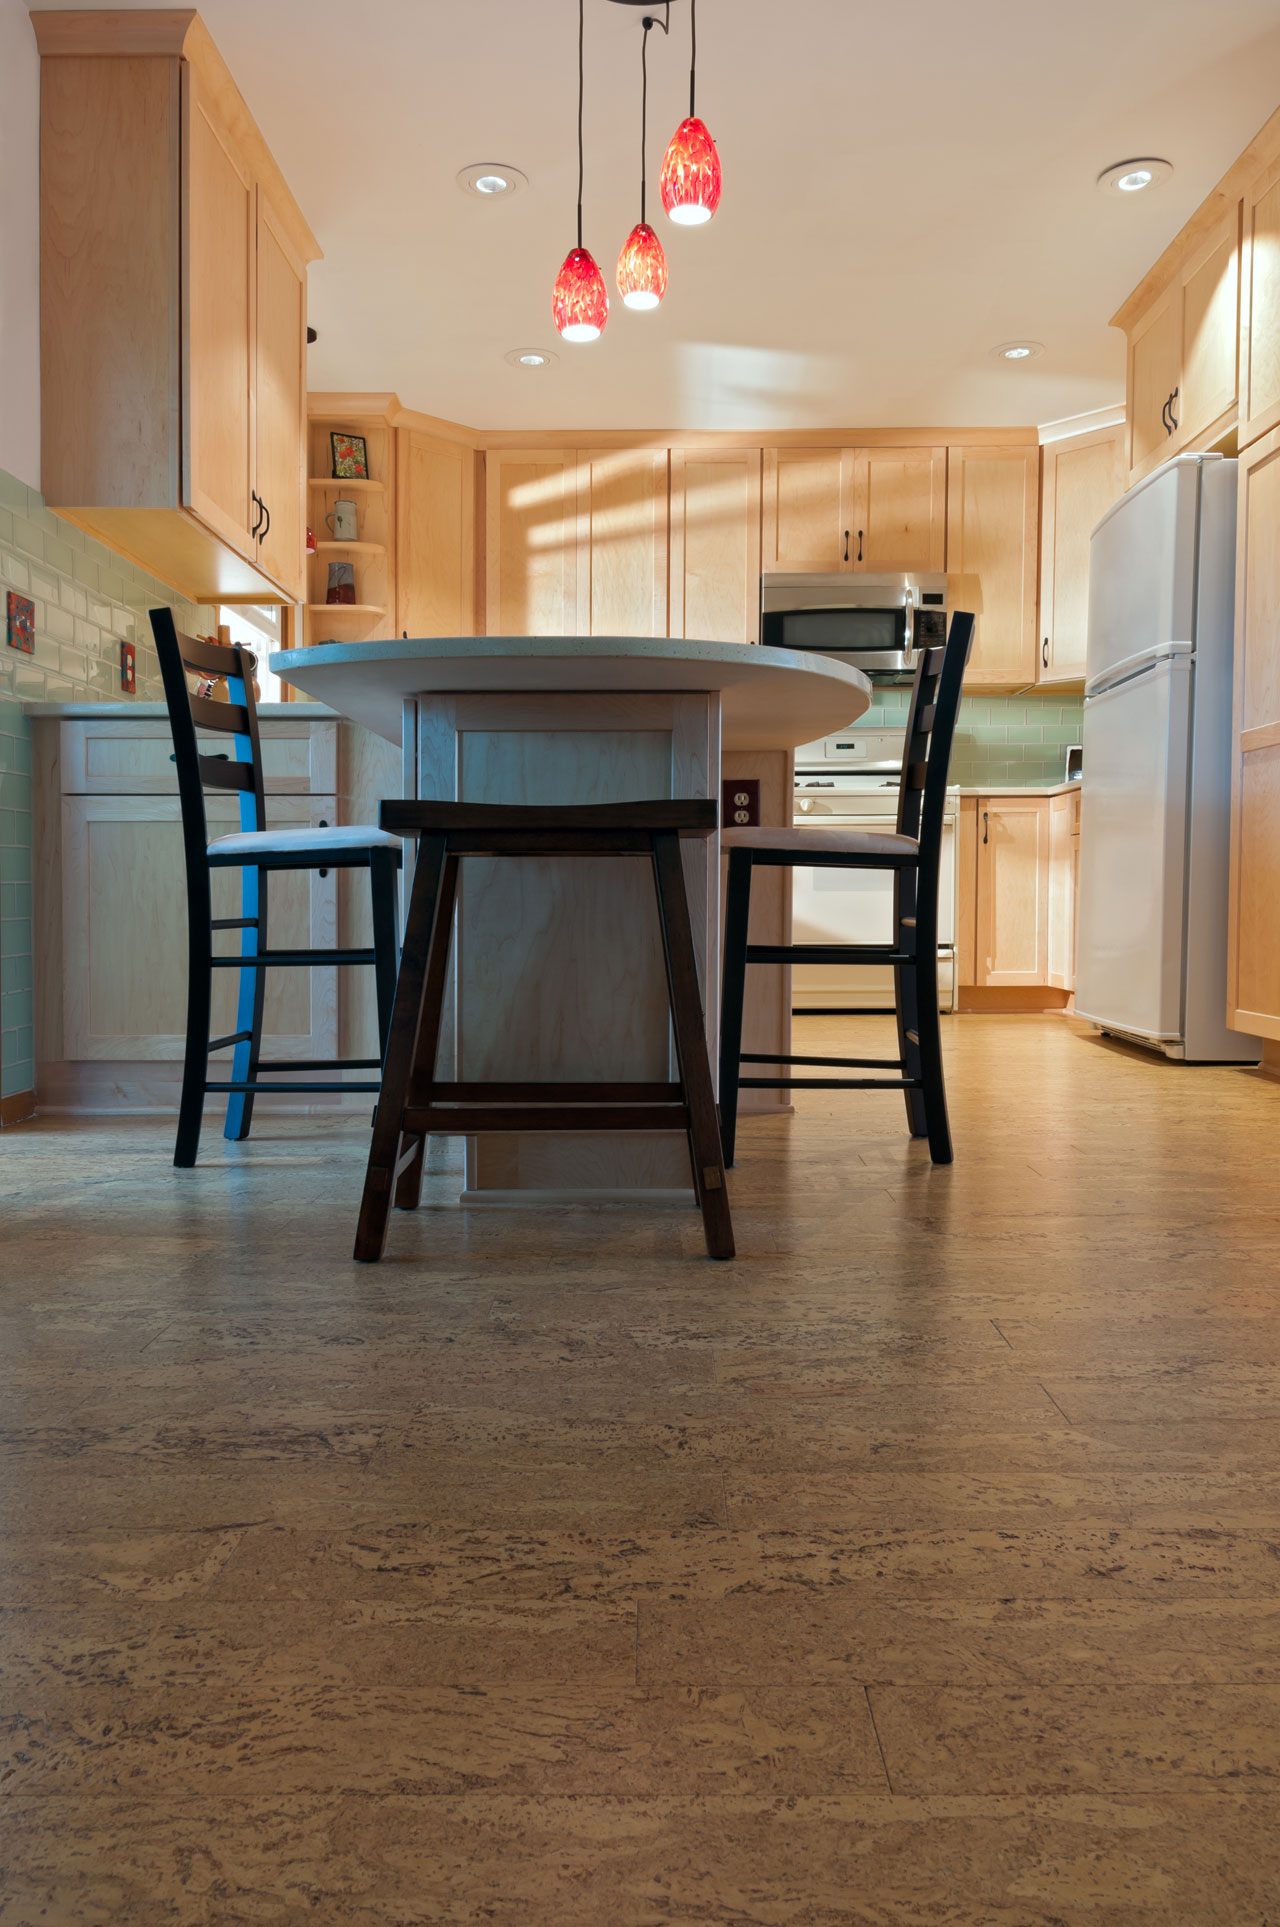 Cork Flooring Is One Of The Most Innovative Floor Coverings Available Today And Also Environmentally Friendly